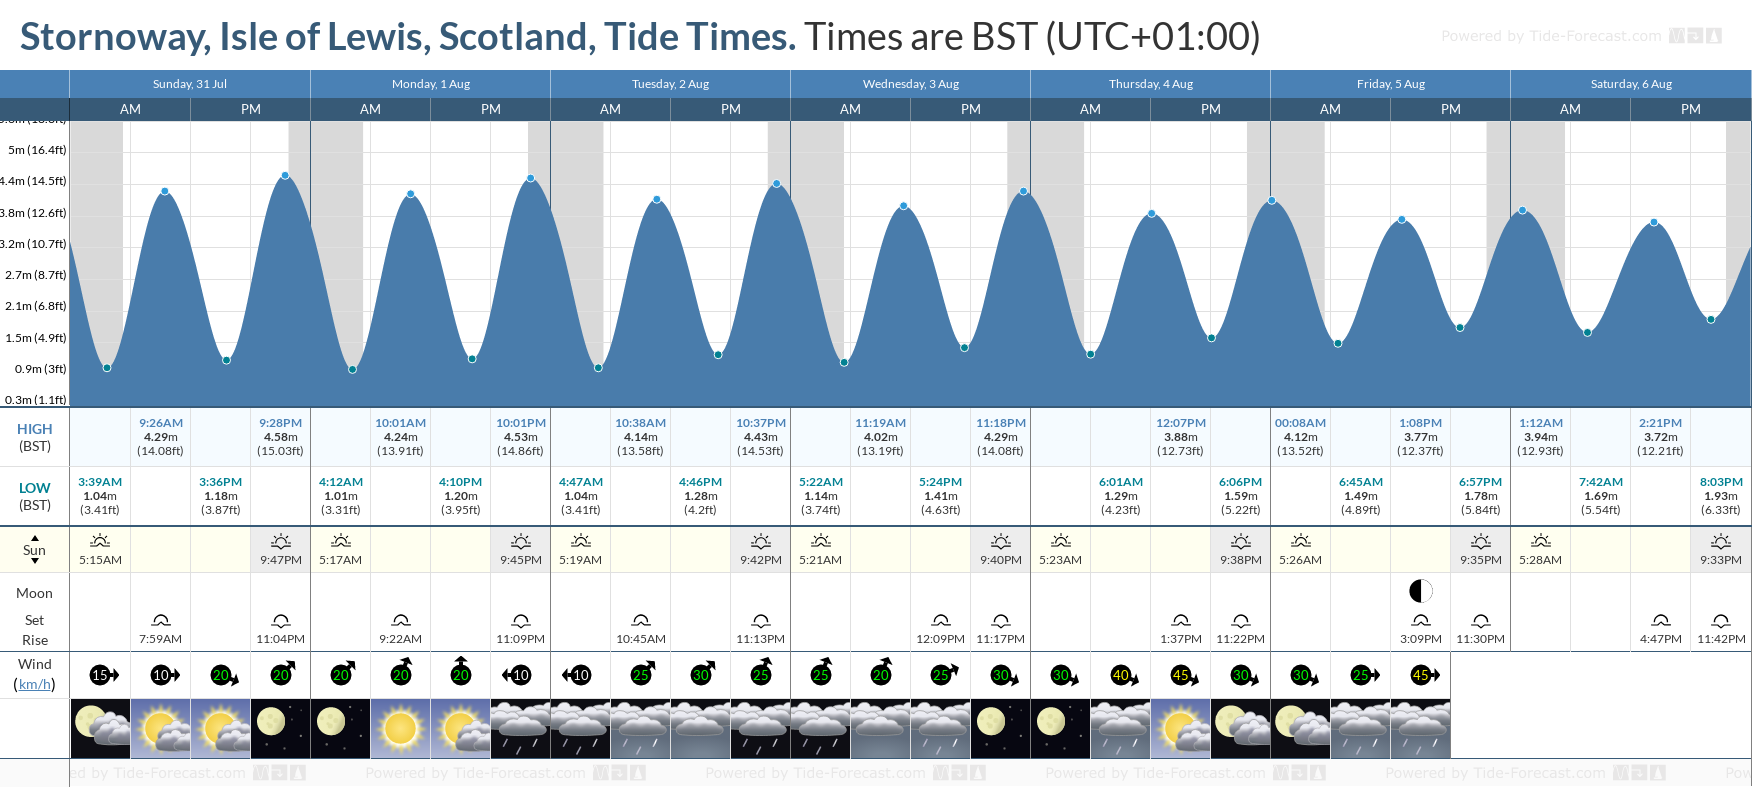 Stornoway, Isle of Lewis, Scotland Tide Chart including high and low tide tide times for the next 7 days